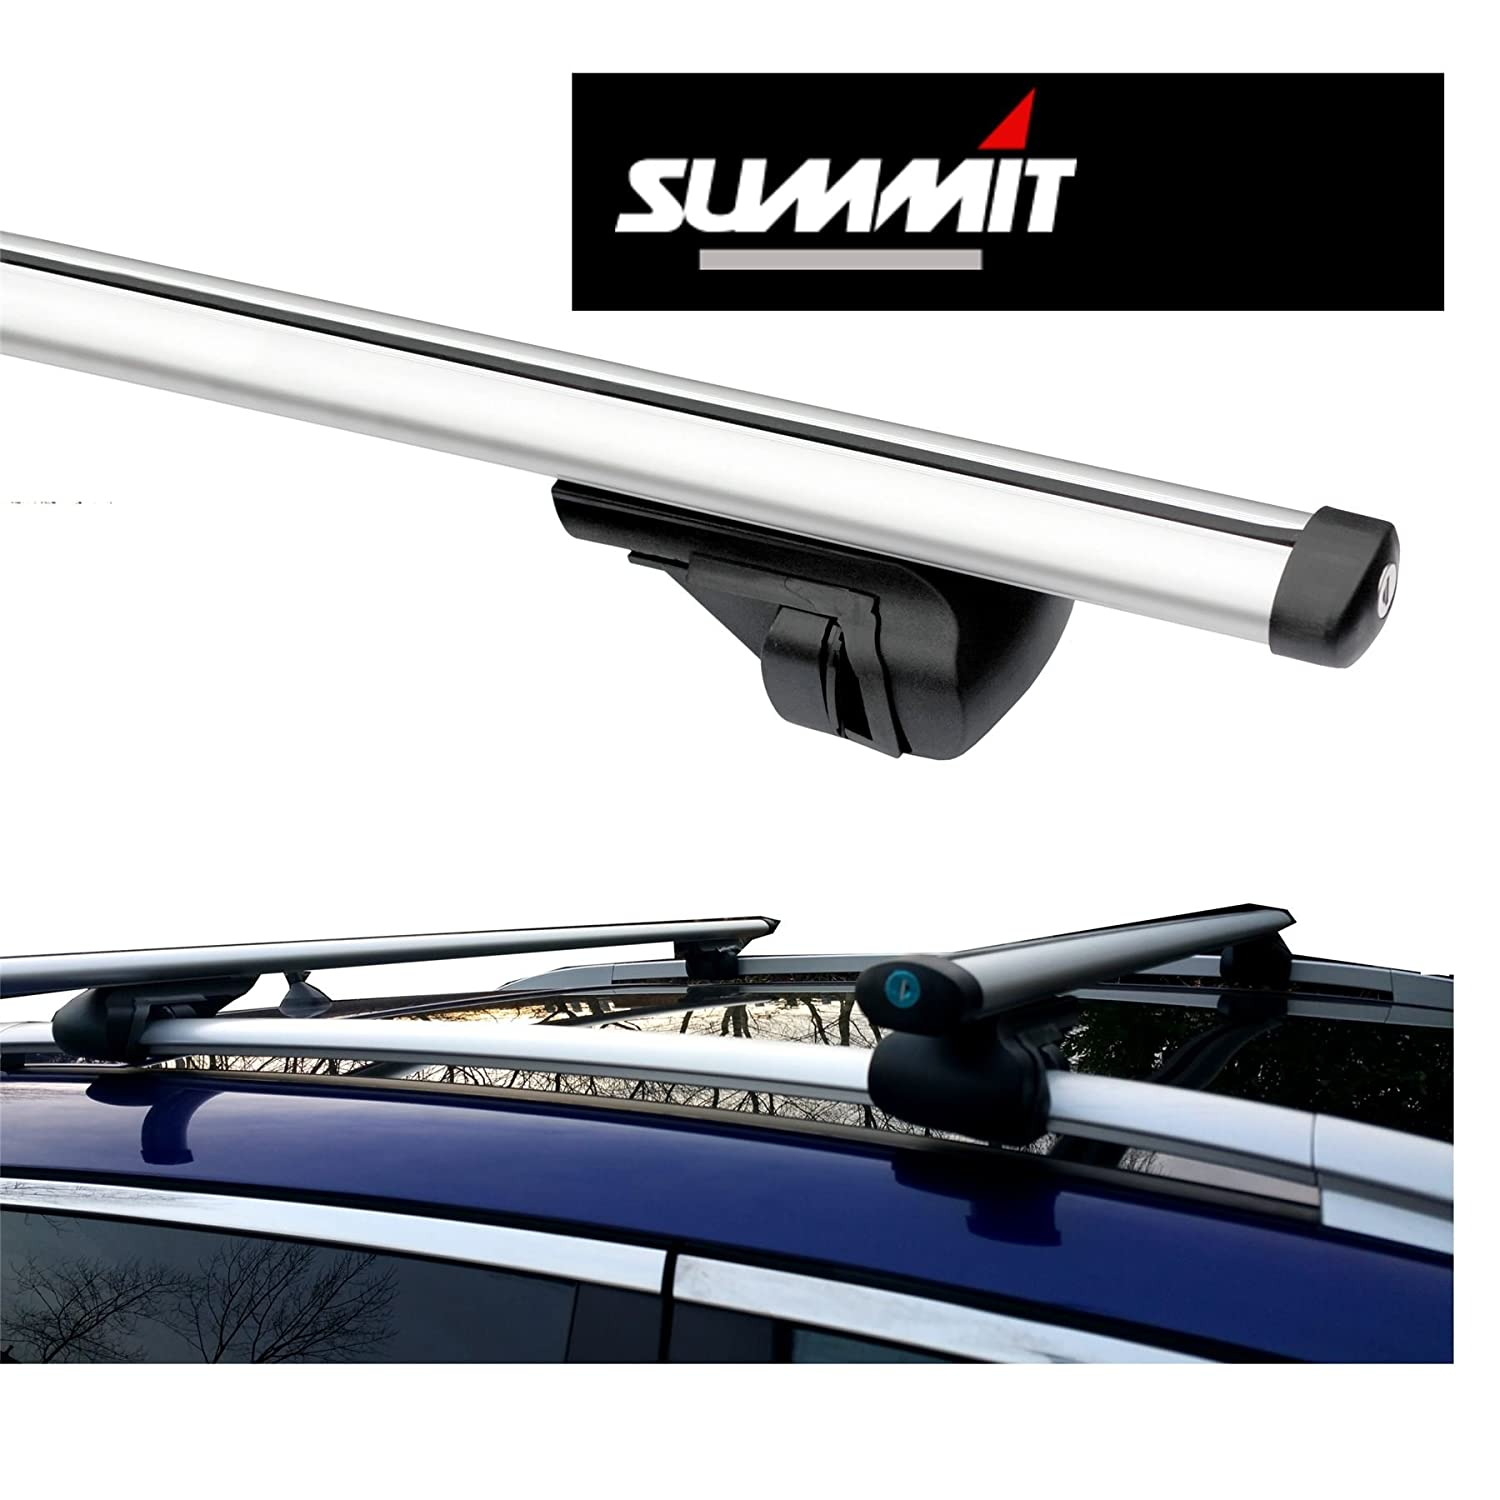 Volvo XC90 2002-2013 Estate ROOF AERO BARS RACK ALUMINIUM LOCKING CROSS RAILS Summit